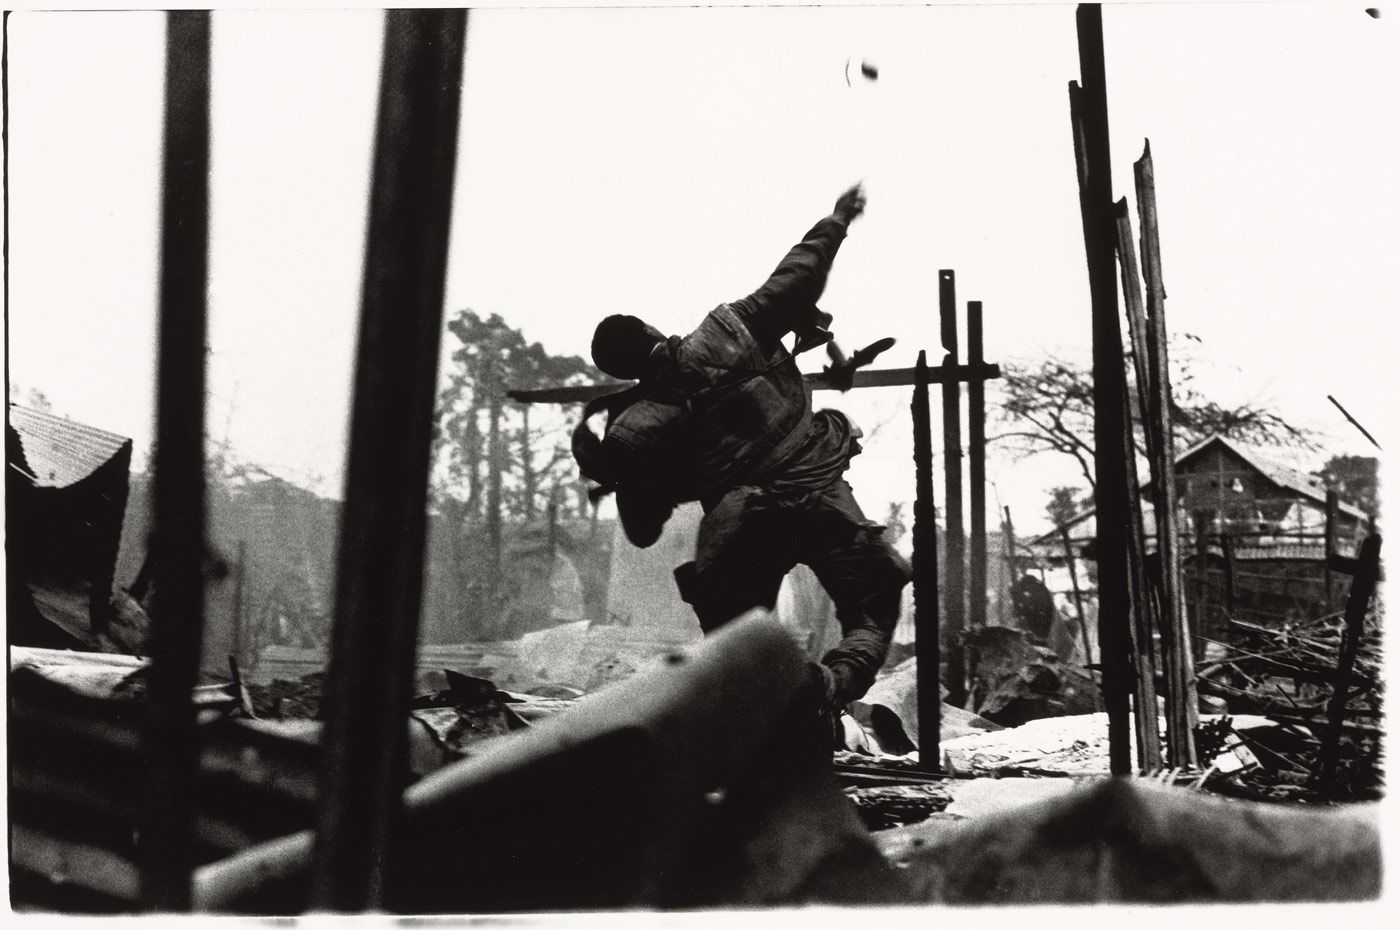 don mccullin us marine throwing grenade tet offensive hu atilde copy south don mccullin us marine throwing grenade tet offensive huatildecopy south vietnam 1968